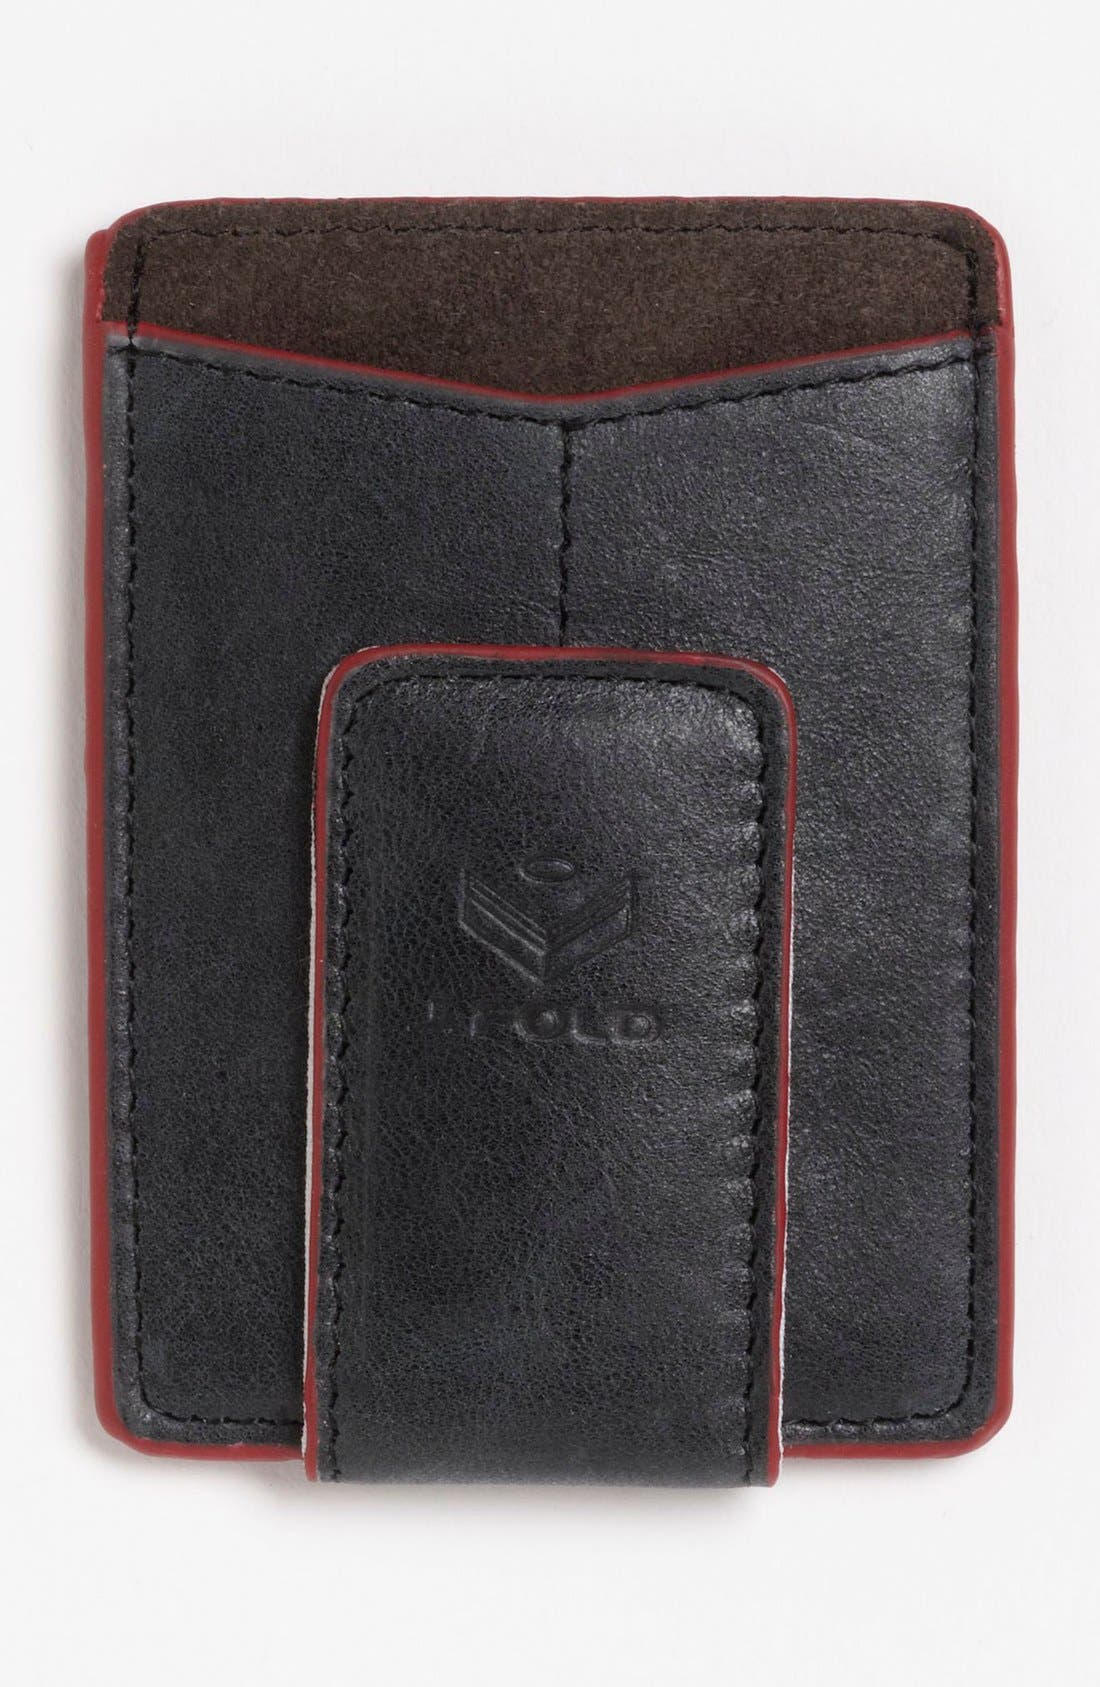 Alternate Image 1 Selected - J. Fold 'Smokestack' Money Clip Wallet